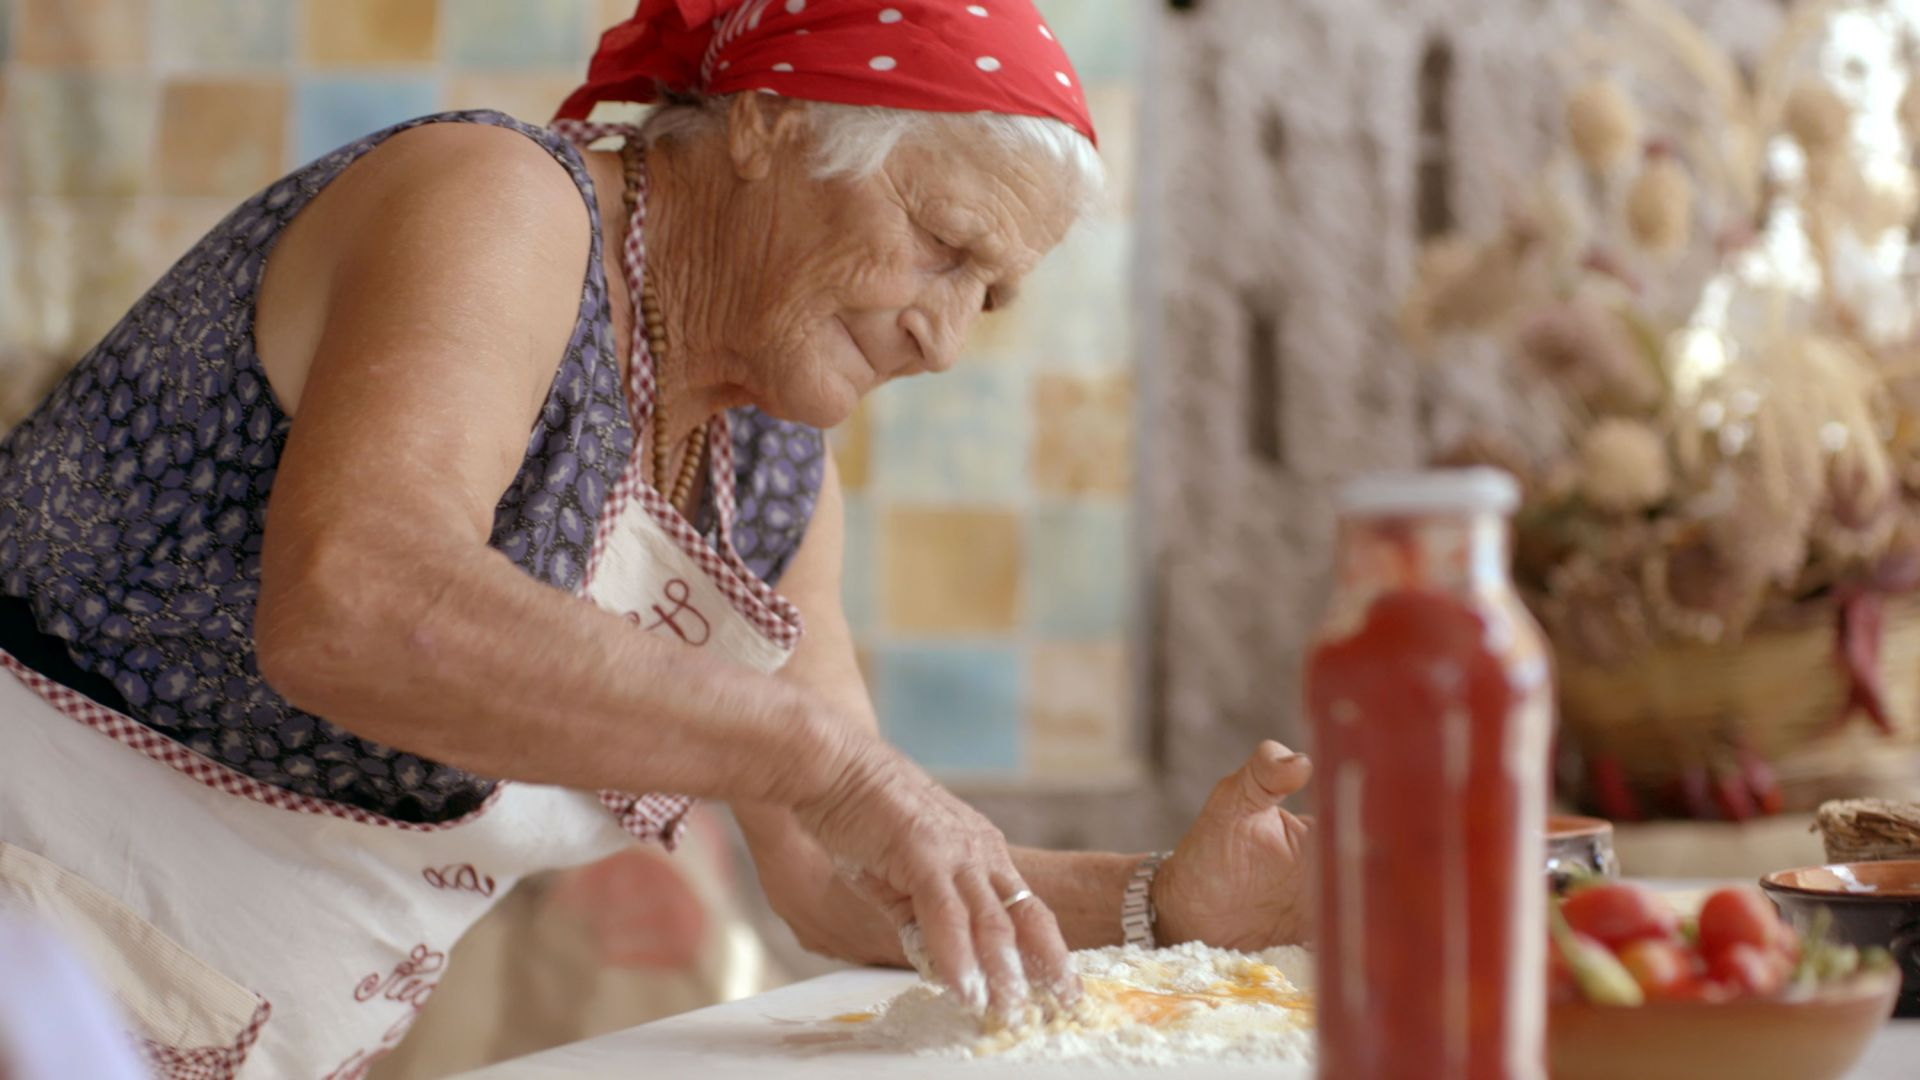 pasta grannies you tube channel